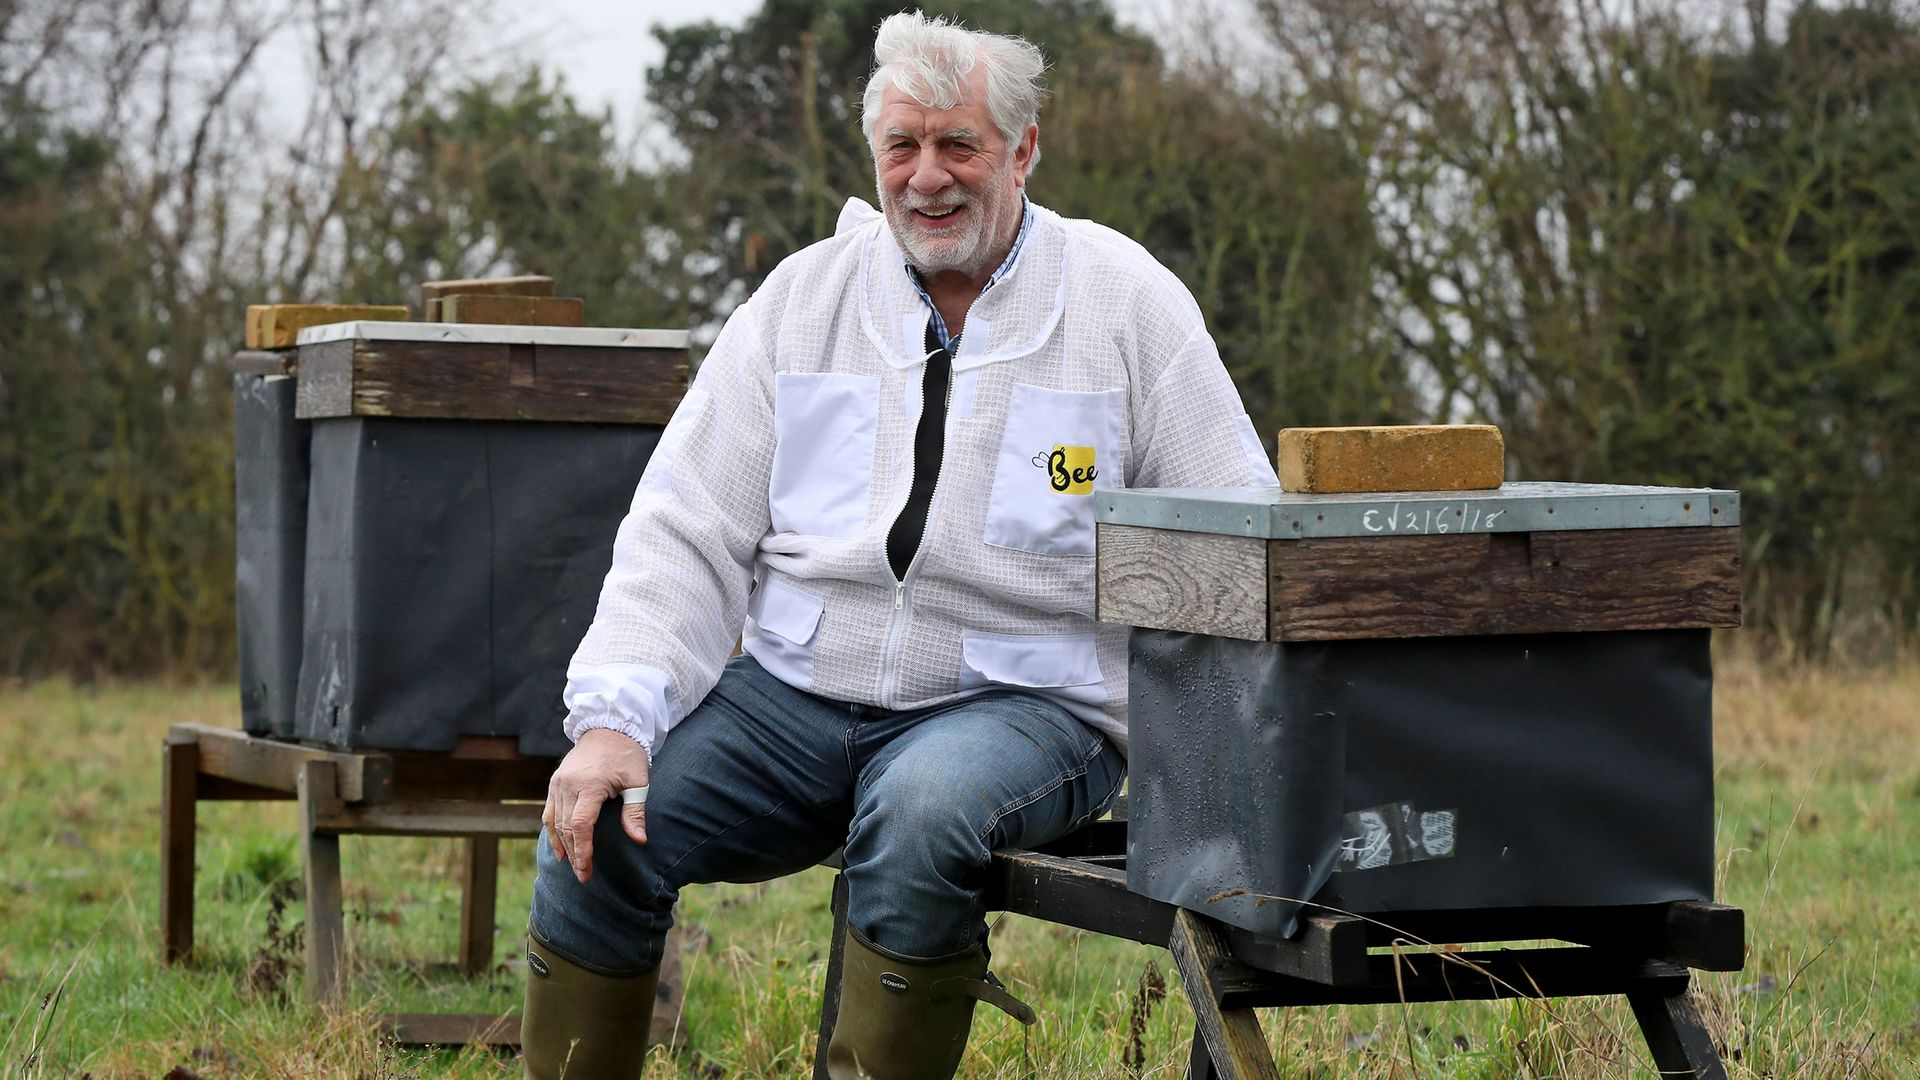 Beekeeper Patrick Murfet sits amongst some of his hives in an orchard near Canterbury in Kent, as he is told the 15 million bees he wants to bring into the UK for next spring may be seized and destroyed if he does - Credit: PA